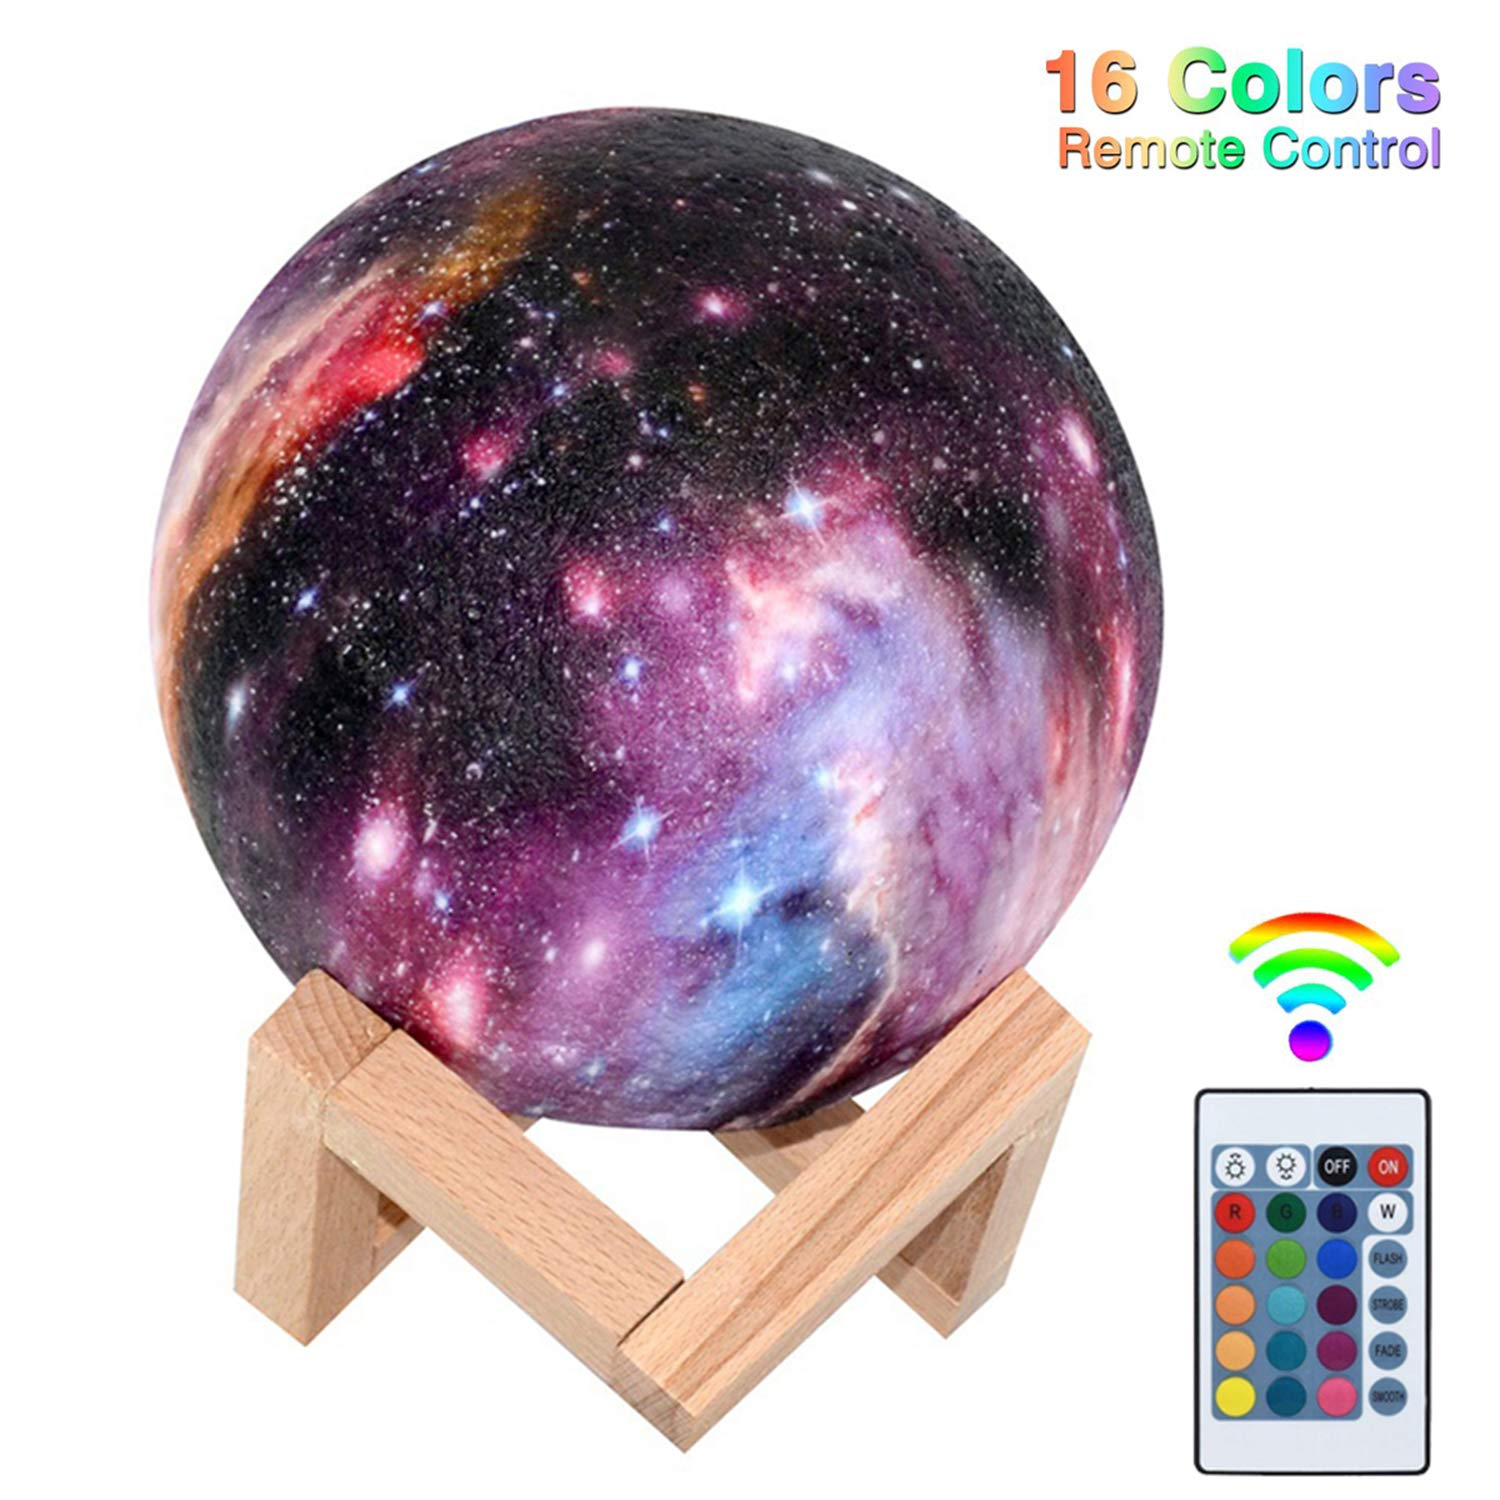 Moon Lamp Kids Baby Night Light 3D Print 16 LED Colors Changing Touch and Remote Control Moon Light Decoration Gift for Birthday Christmas(5.9 inch)